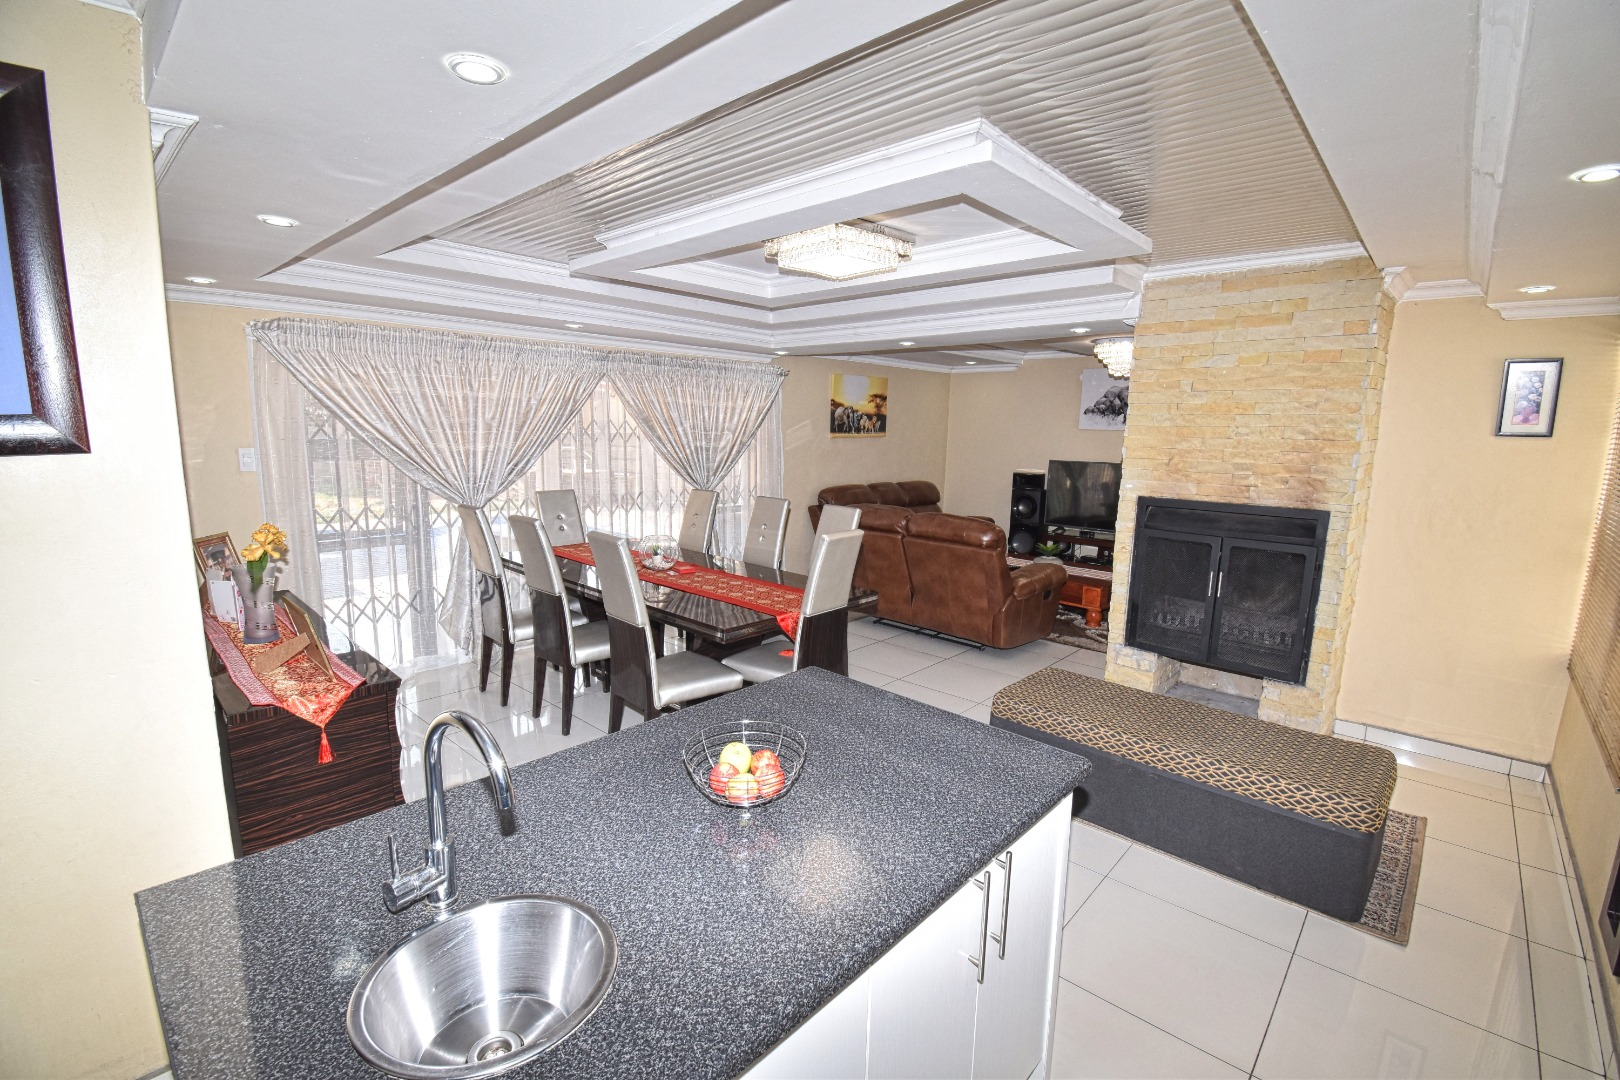 4 Bedroom House For Sale in Crystal Park